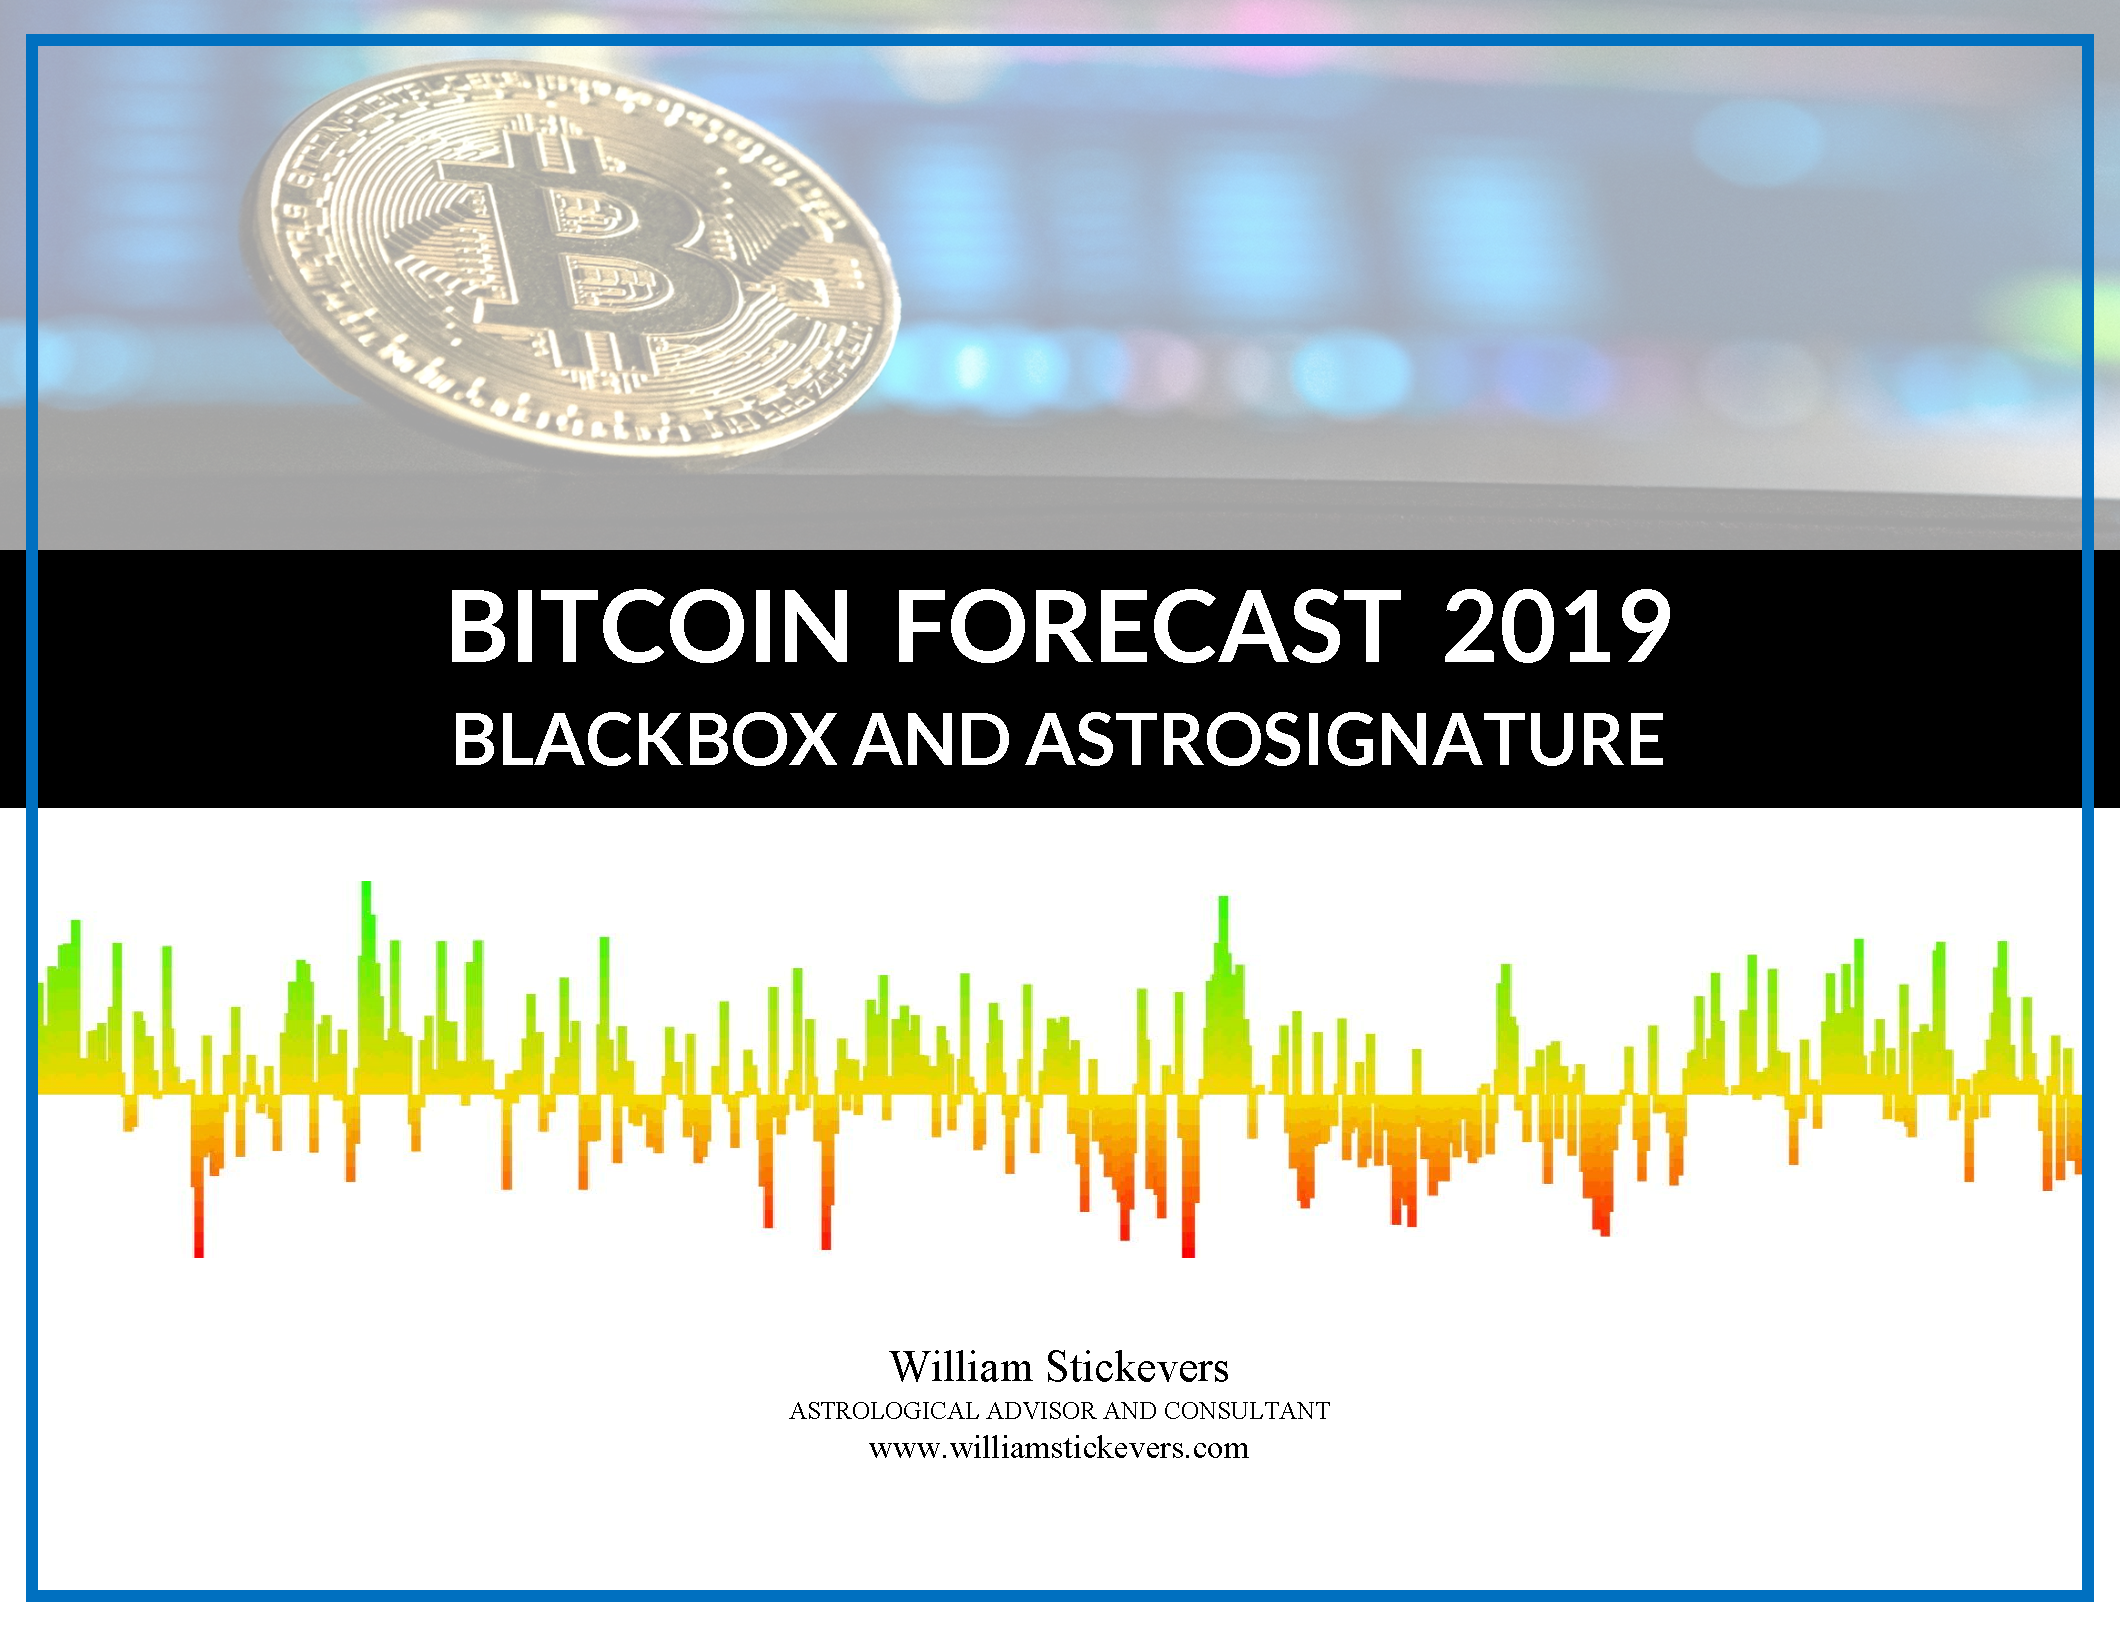 Bitcoin Forecast 2019 Report